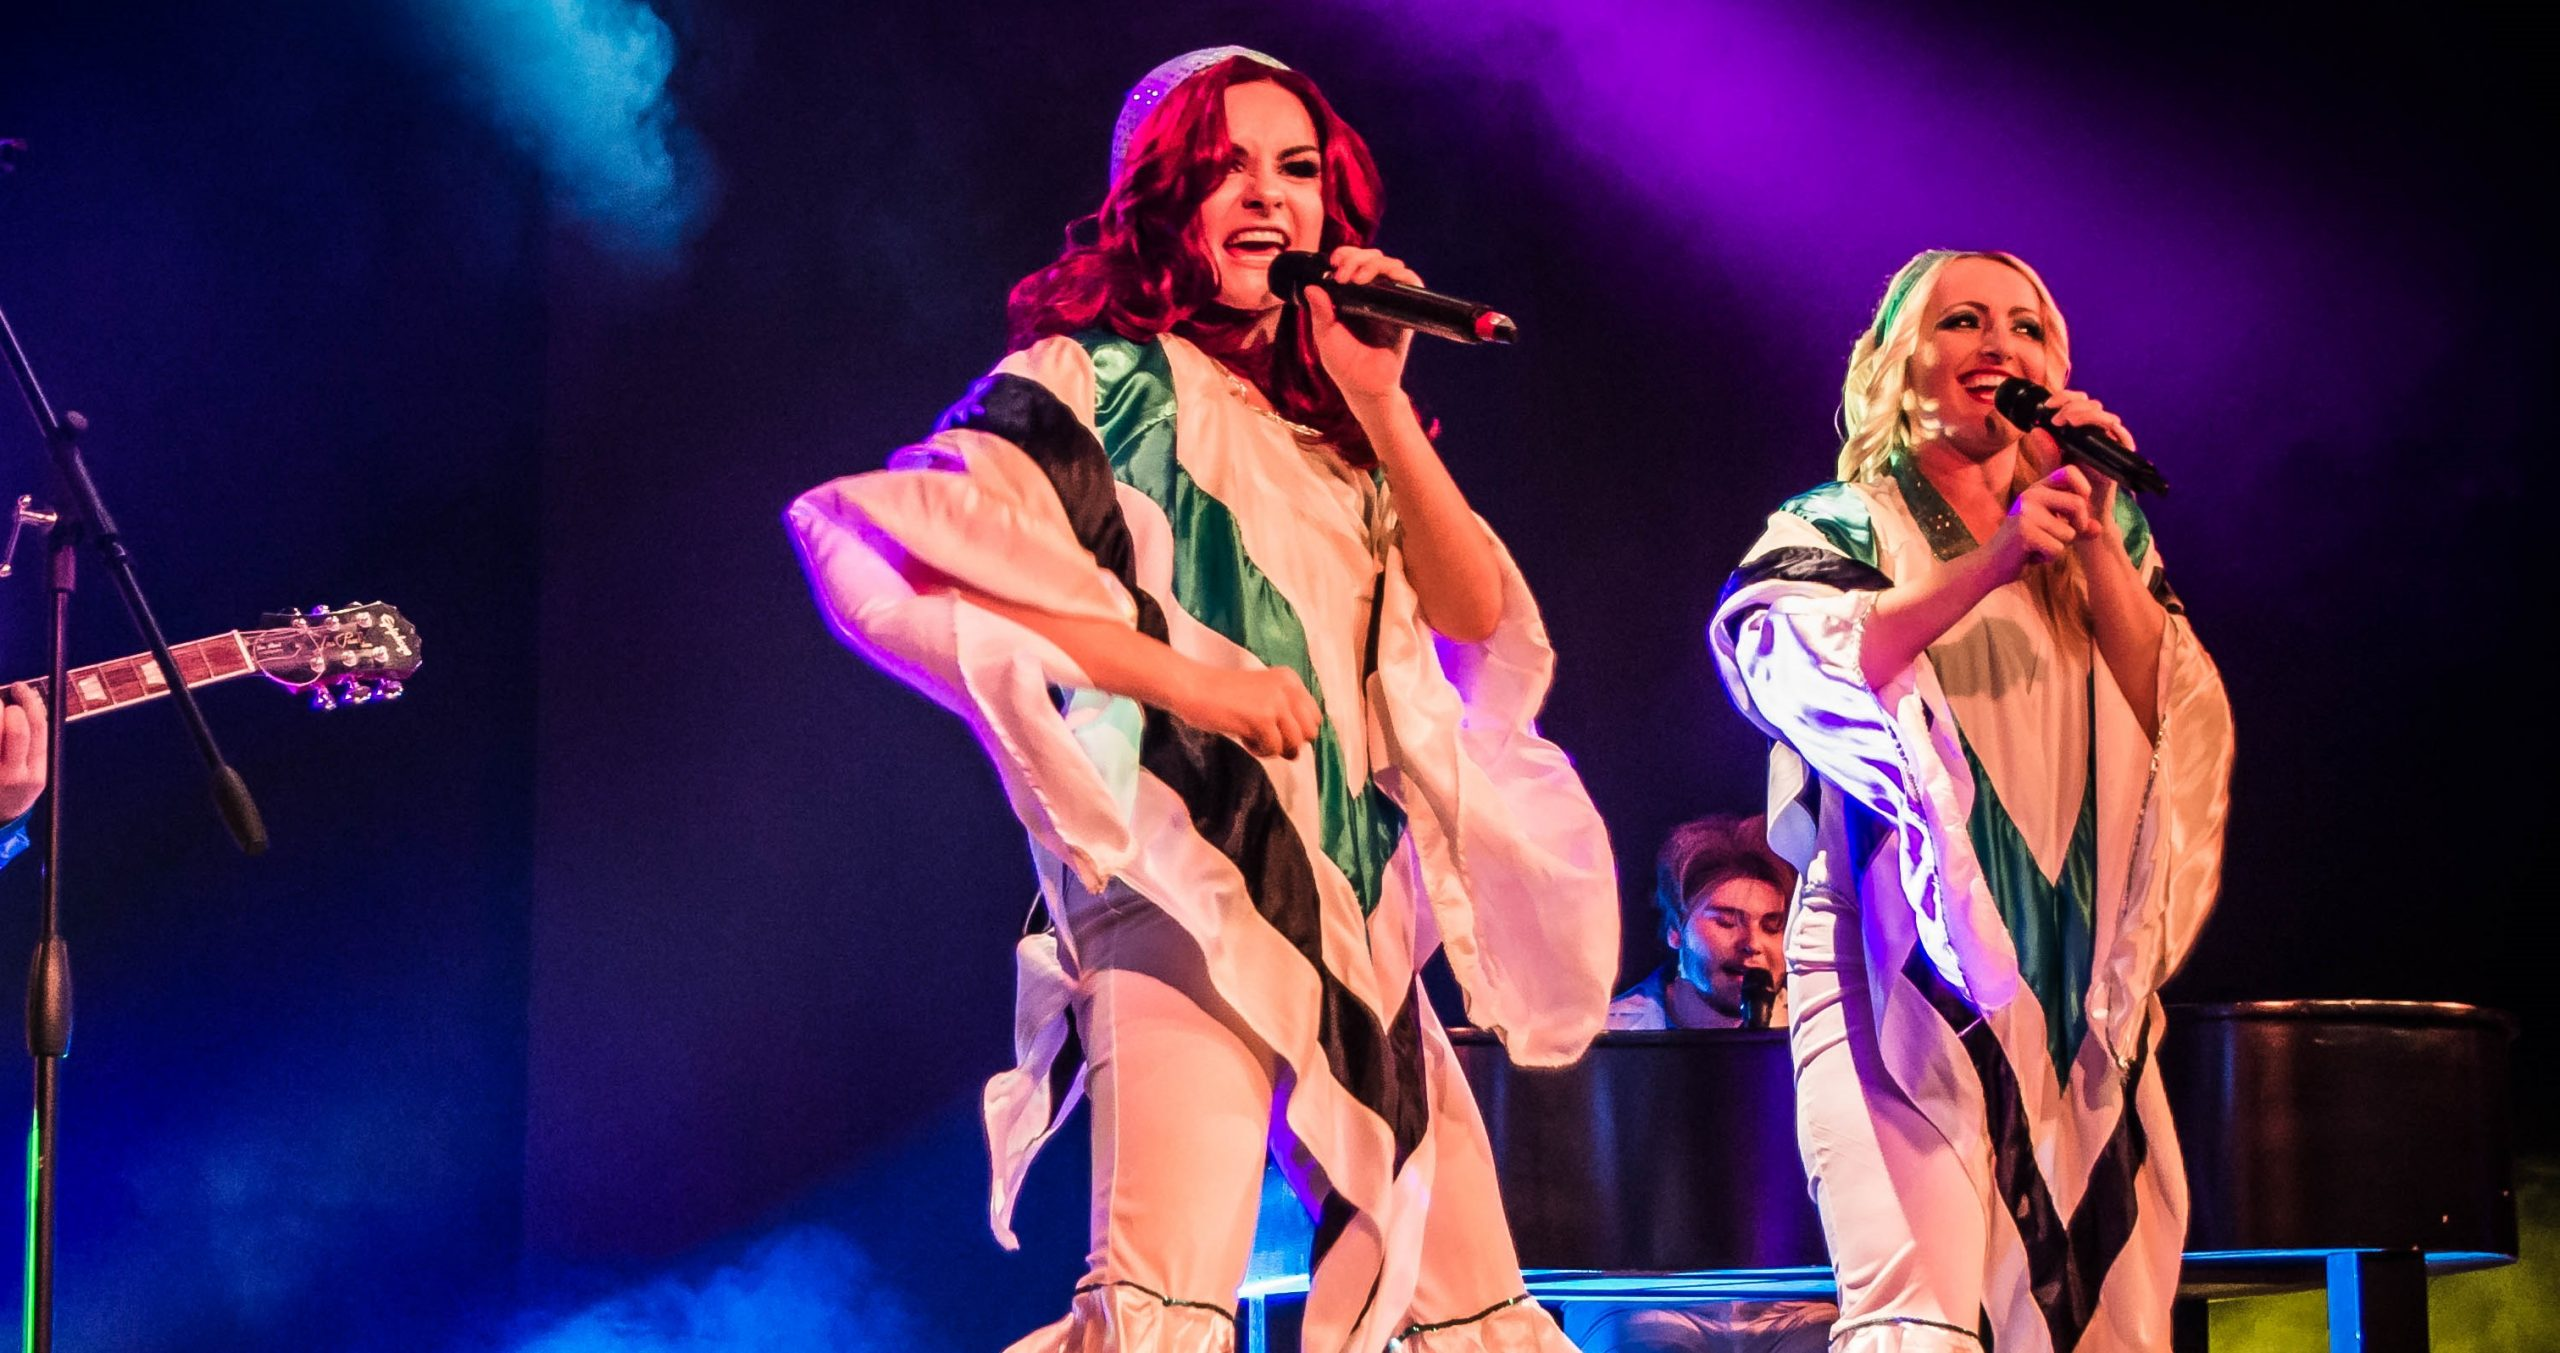 Abba Tribute - Just One Look